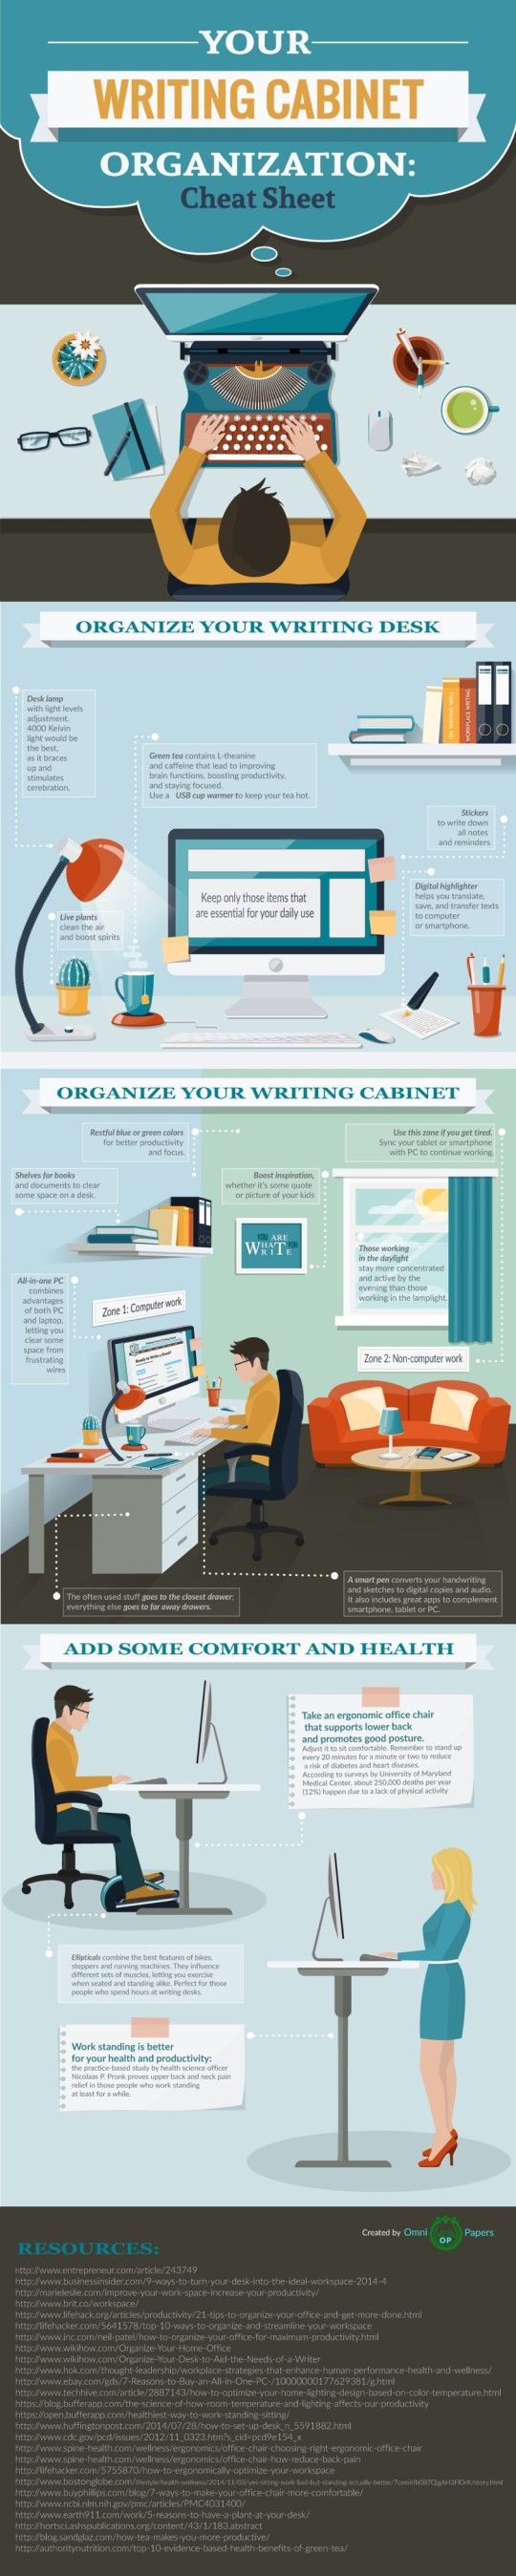 Tips to organize a writing desk #infographic